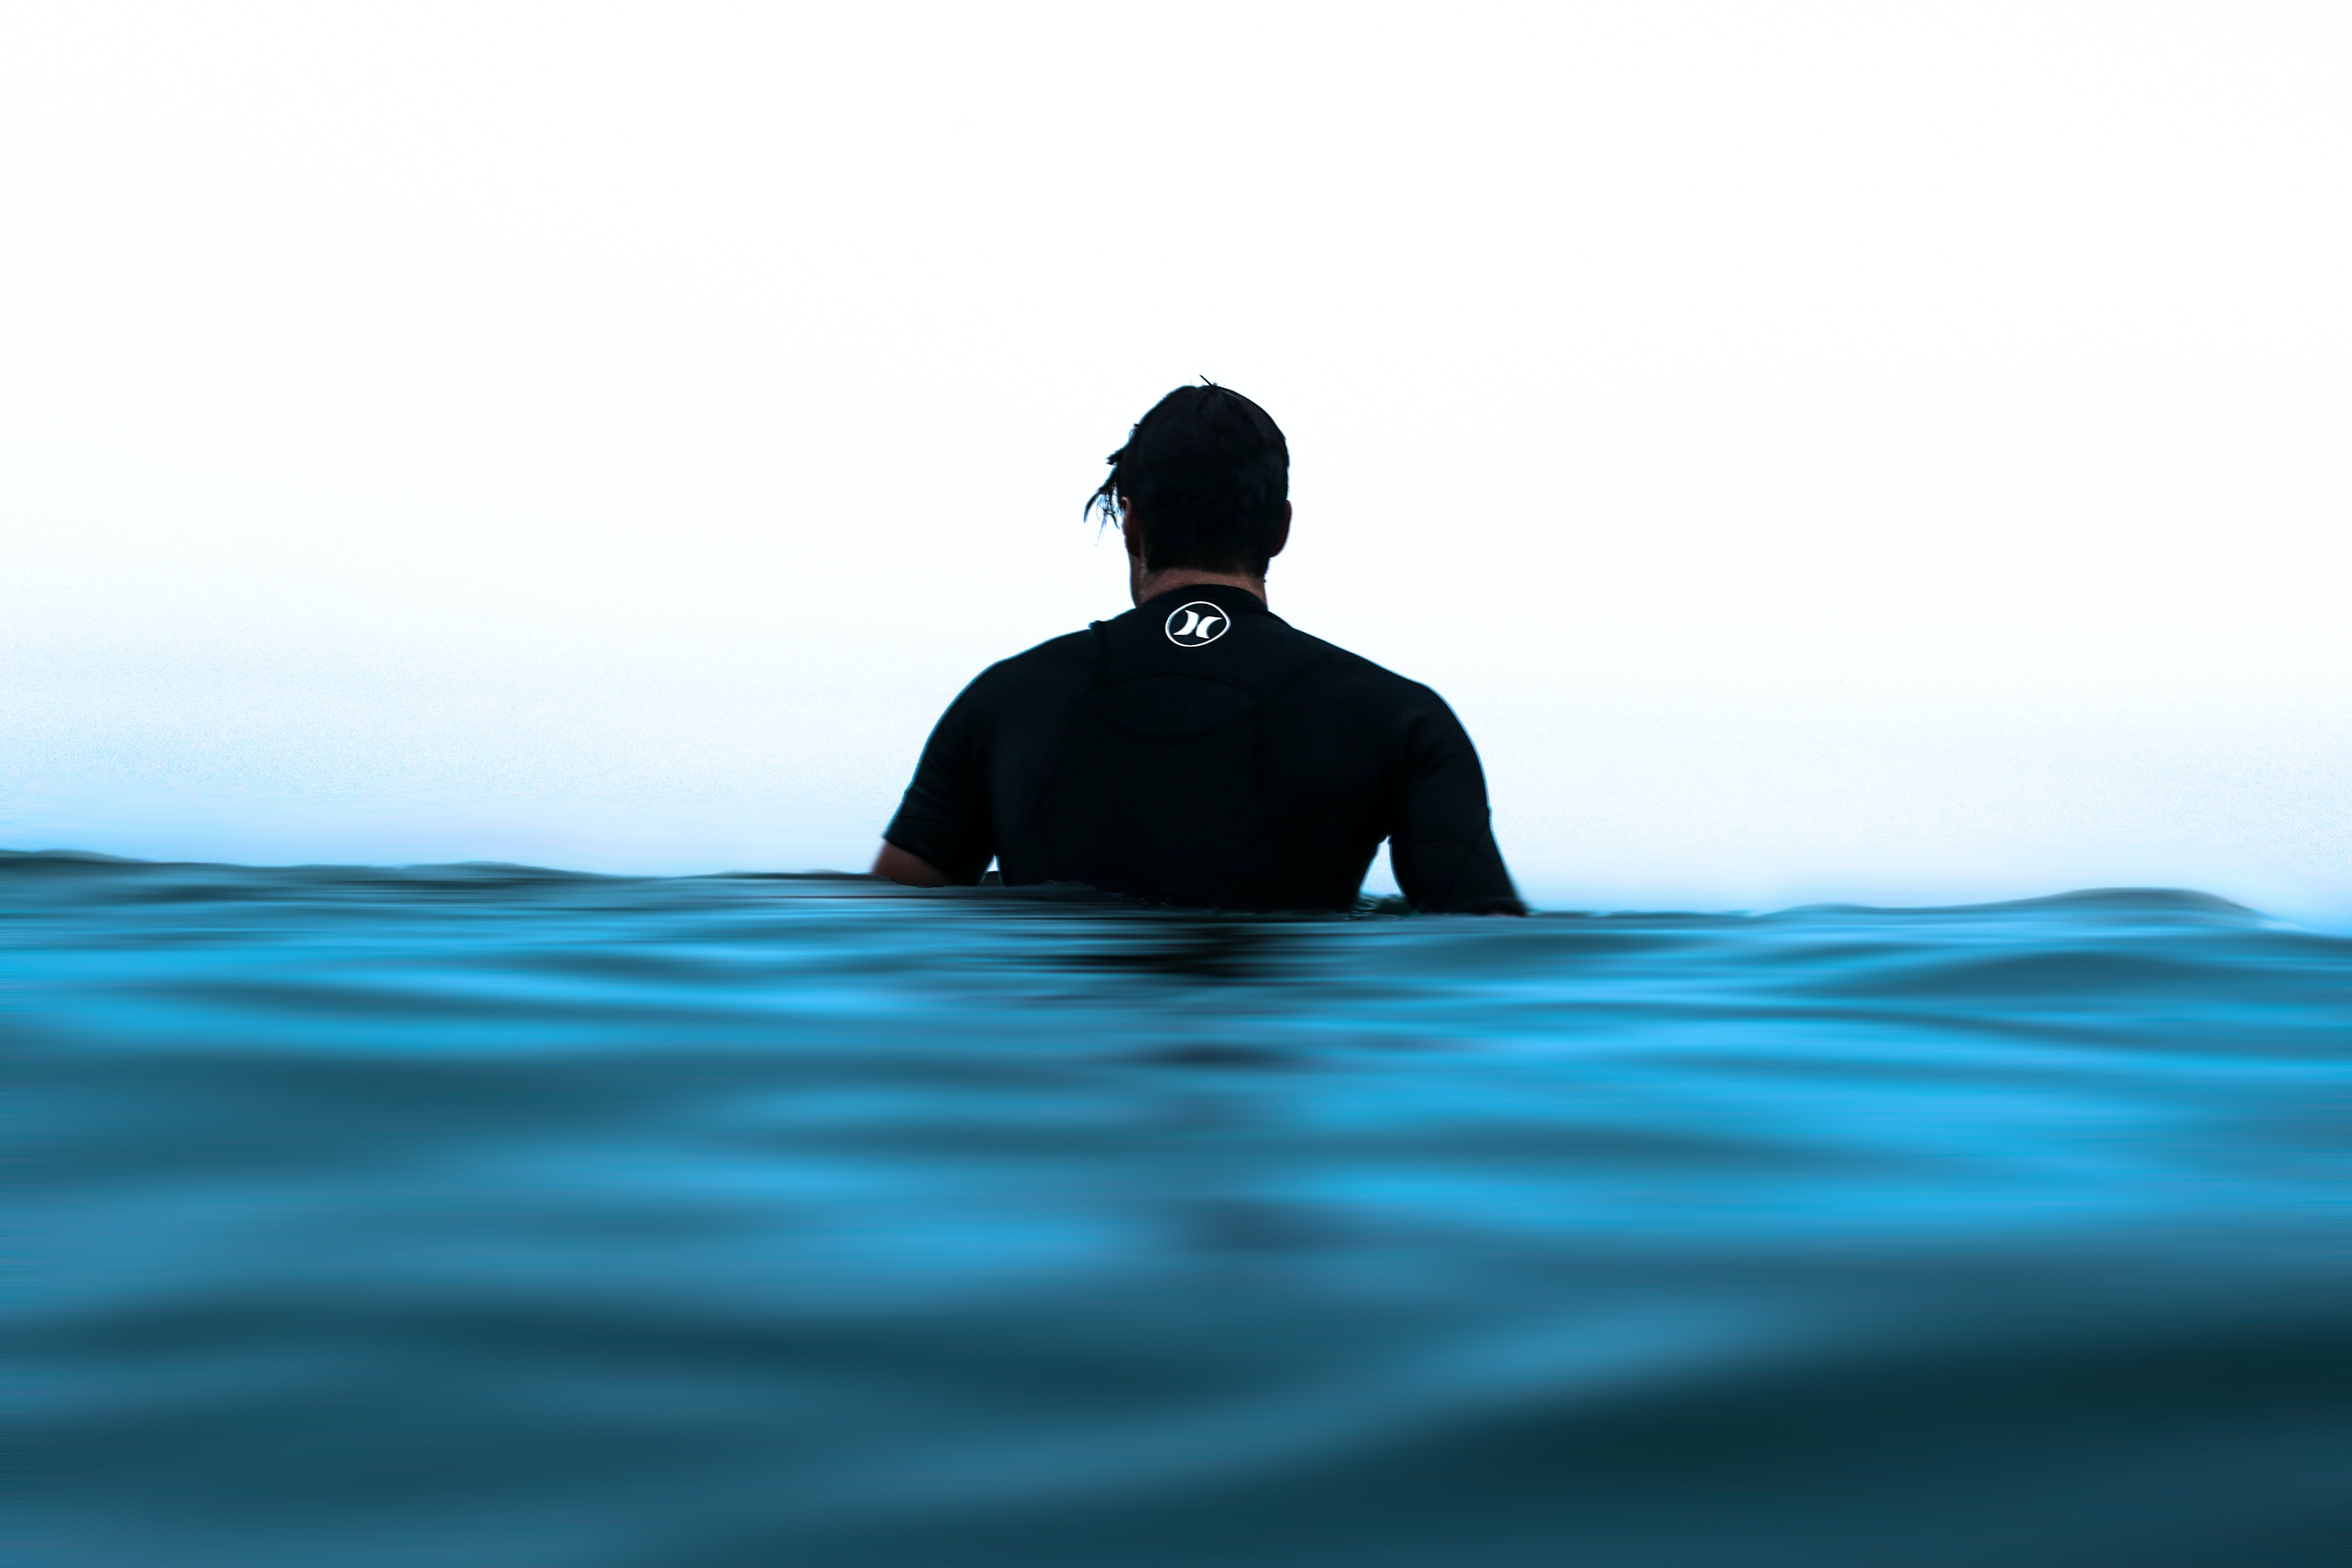 person on body of water